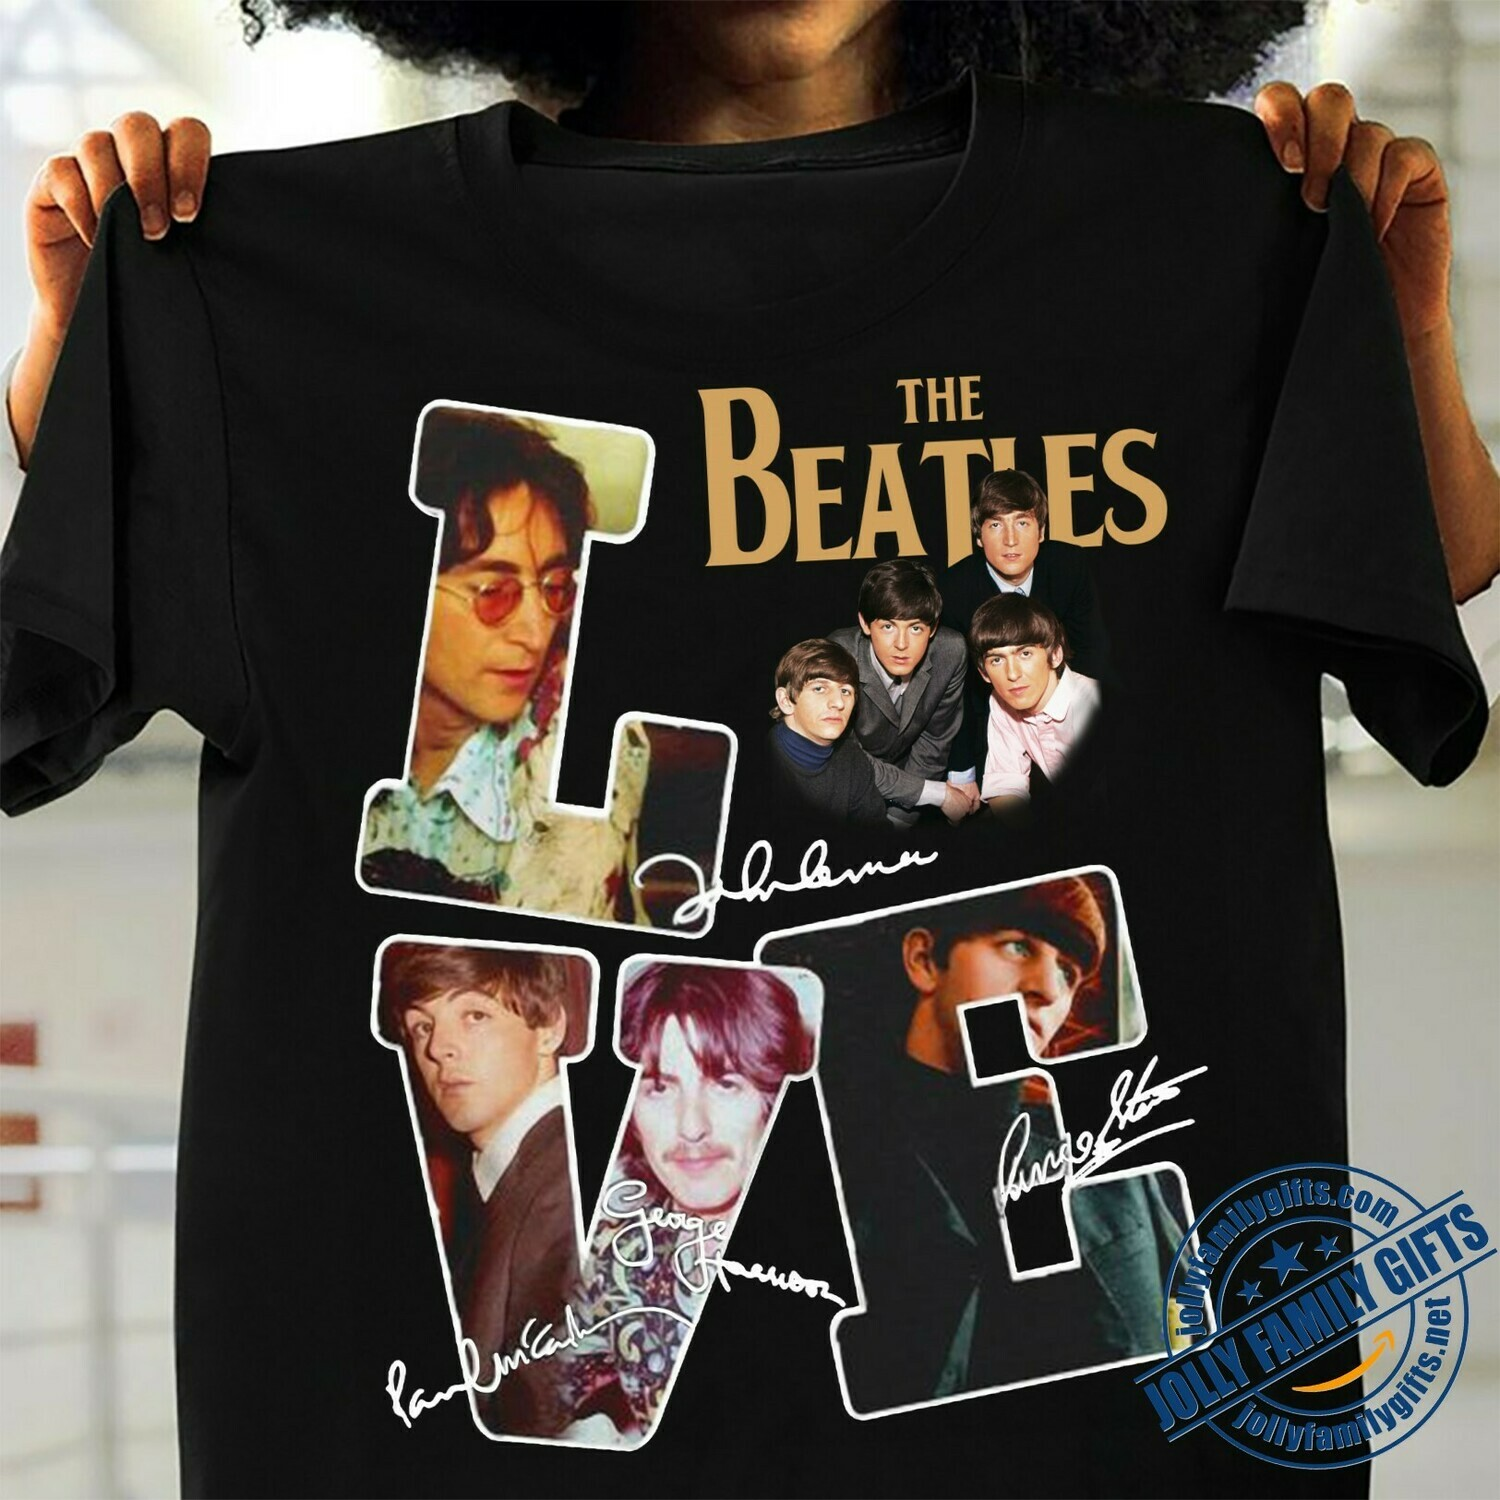 The Beatles 60th anniversary Love Classic Rock Band Legend the memories Signature  Unisex T-Shirt Hoodie Sweatshirt Sweater Plus Size for Ladies Women Men Kids Youth Gifts Tee Jolly Family Gifts